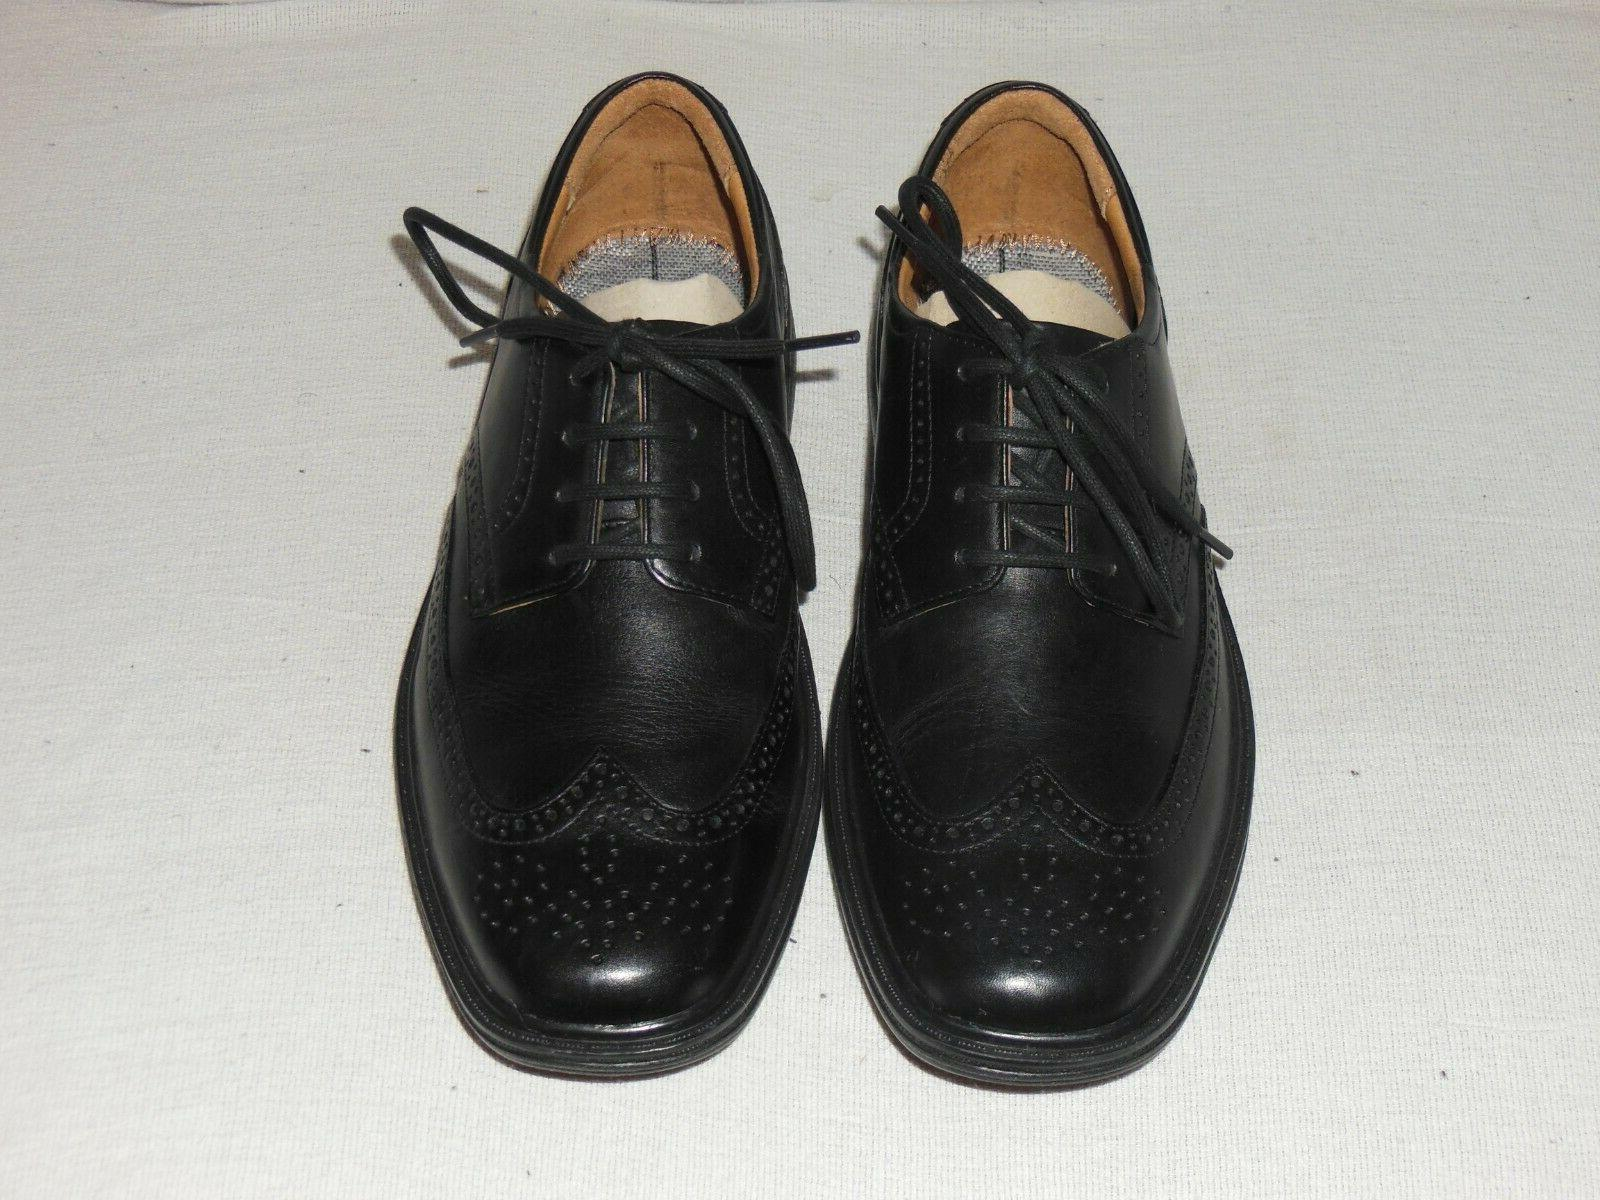 Dr. Comfort Therapeutic Dress Shoes 6.5 M